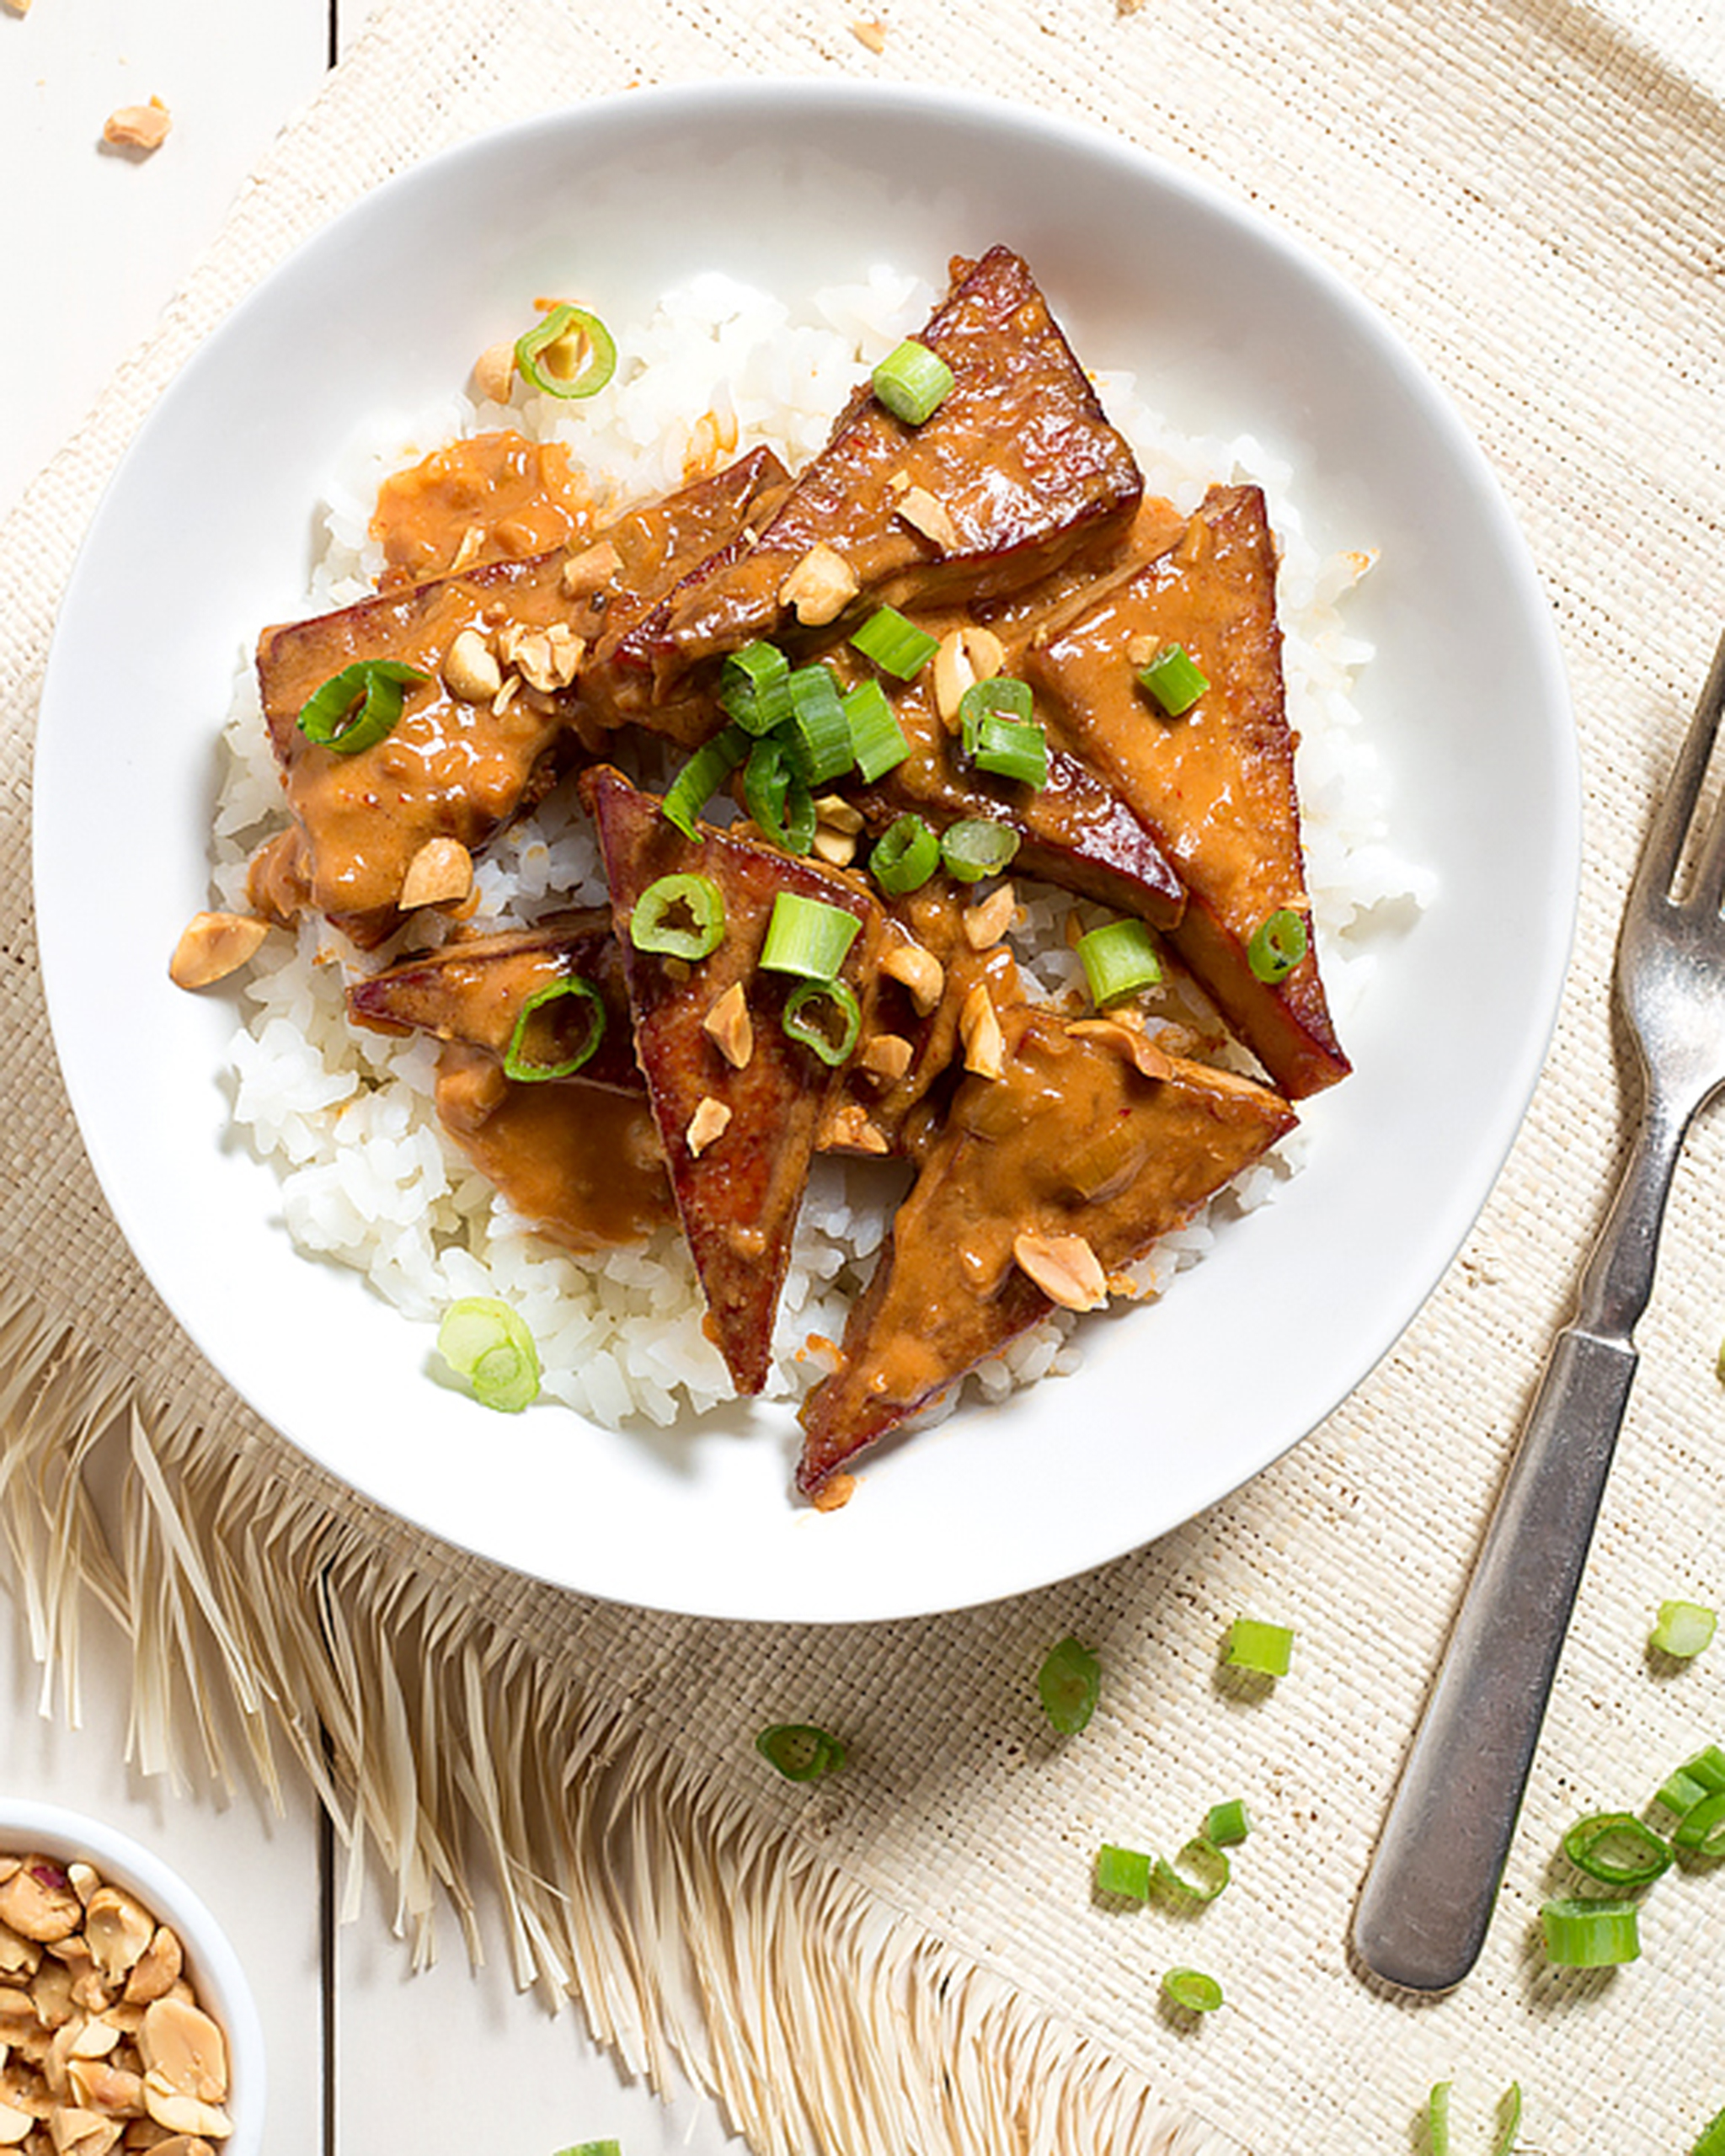 A photo of a spicy peanut butter tofu on top of white rice garnished with green onion.